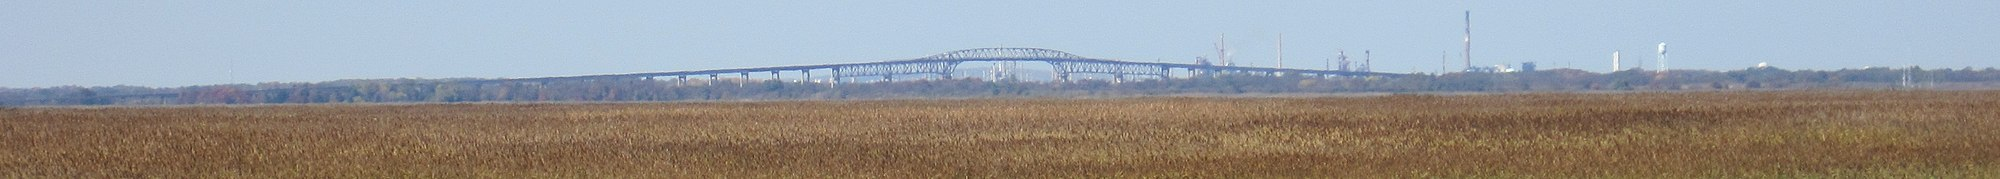 Panorama of a cantilever bridge